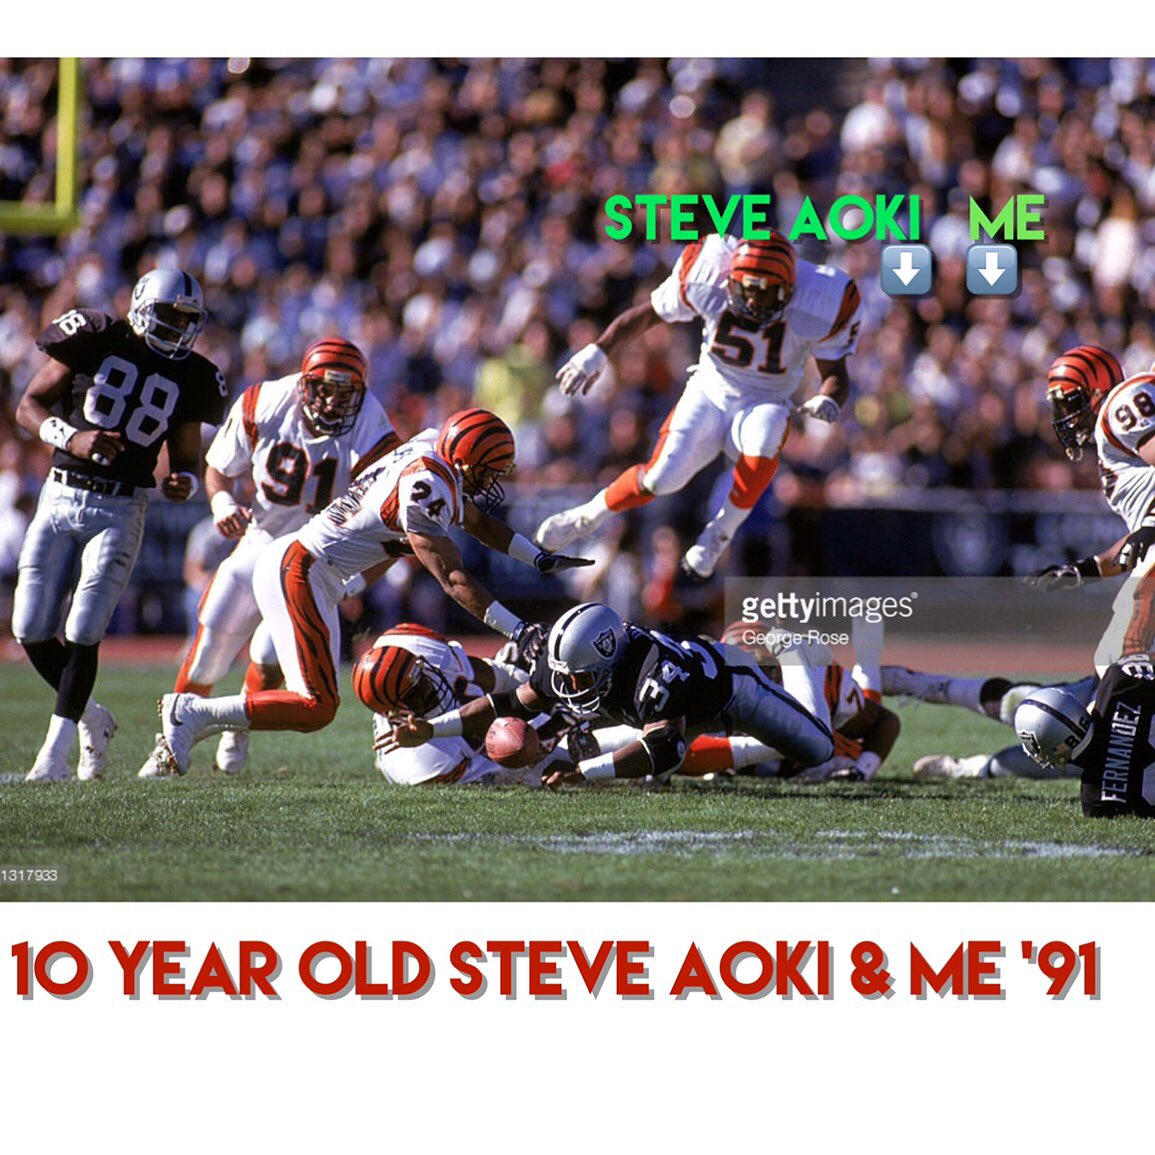 I met @steveaoki when he was 10 at Raiders/Bengals game- he said he wanted to be a comedian- I told him he should DJ https://t.co/mSn6Ih3hLC